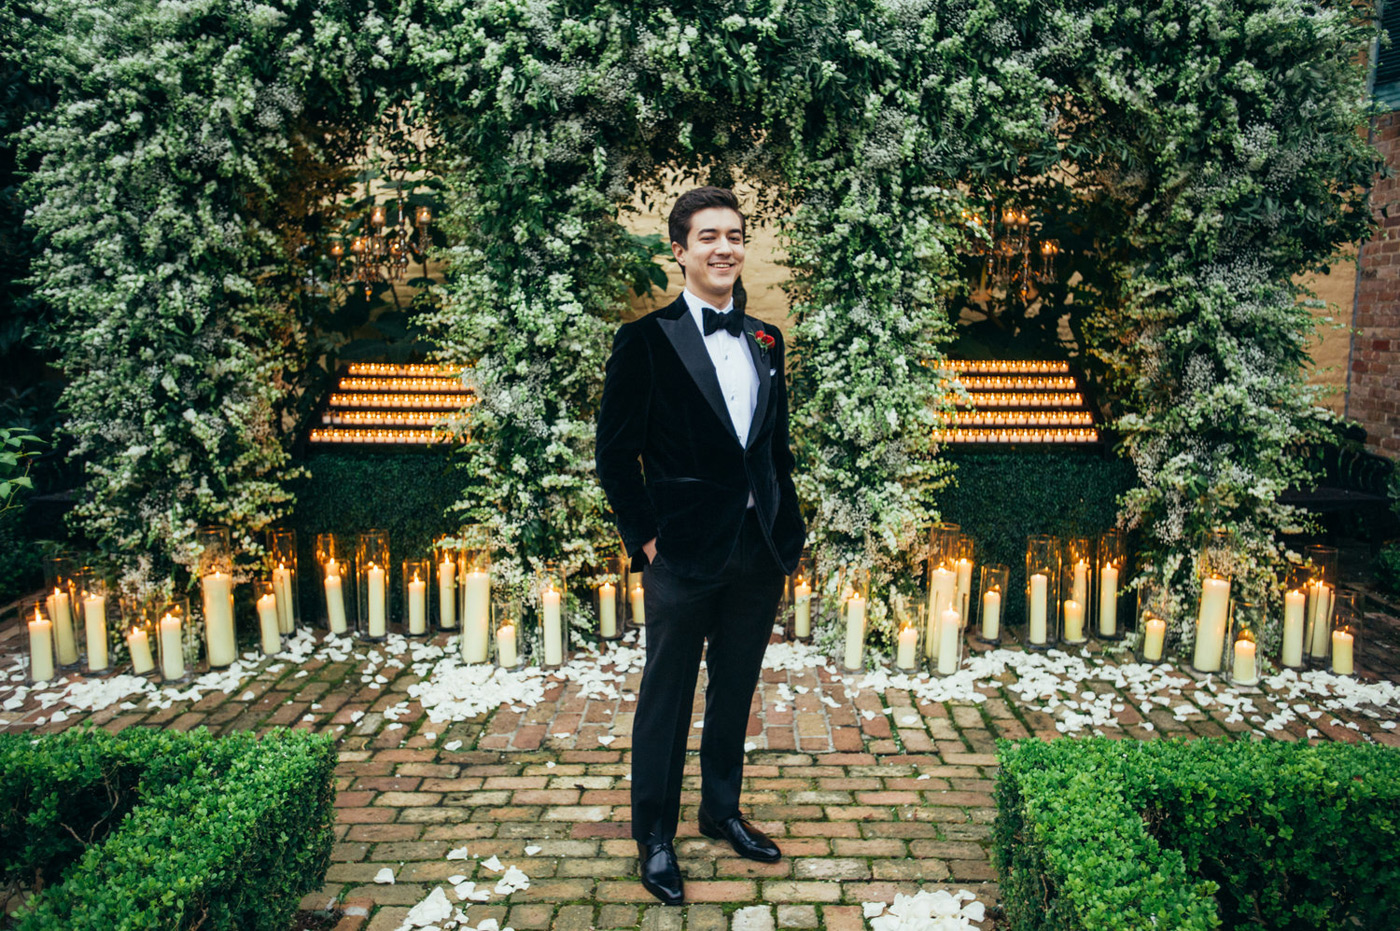 Groom smiling in his black velvet tux with a red boutonniere in front of candles and greenery